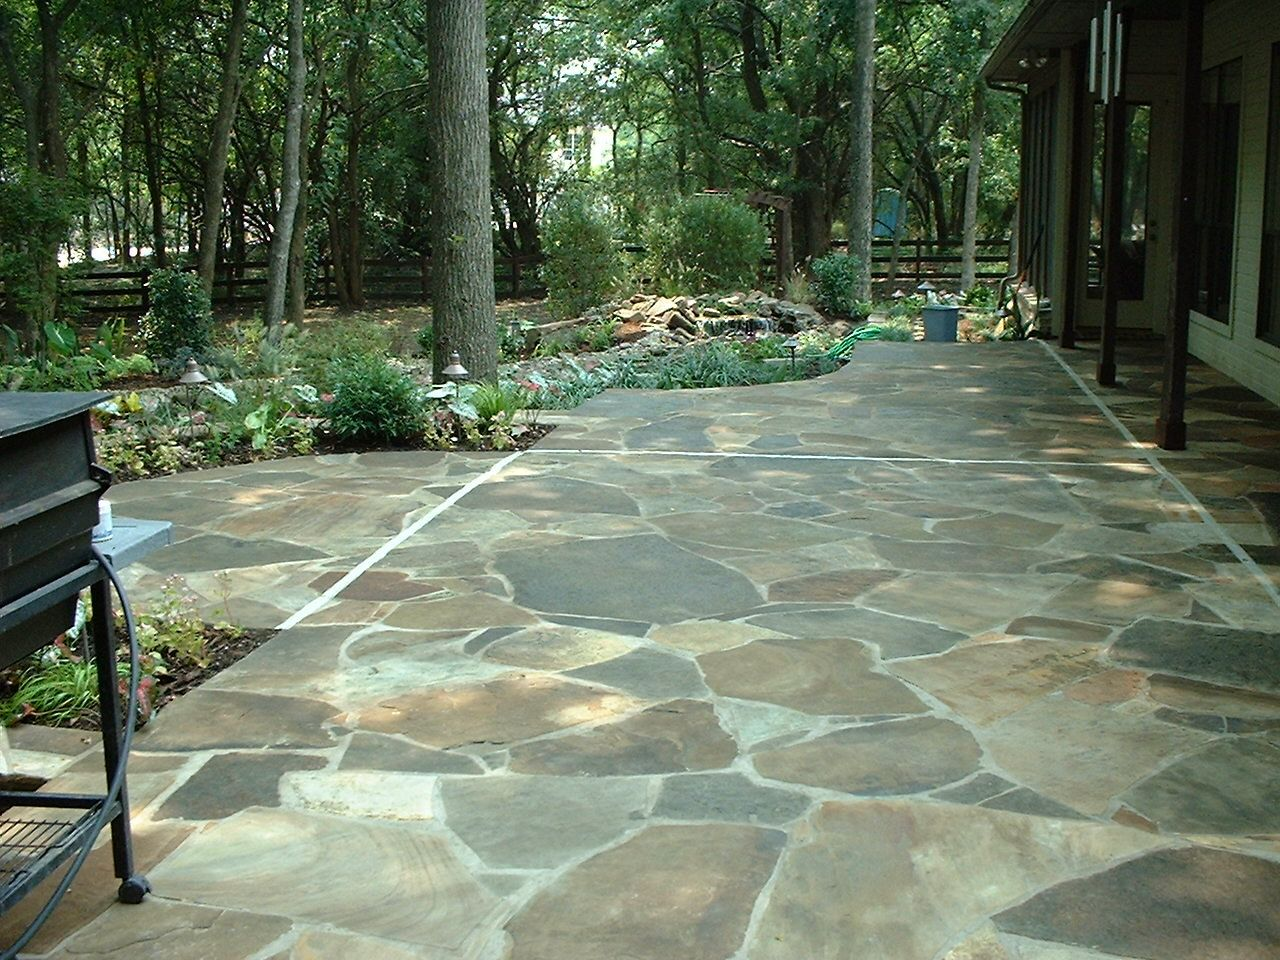 The Best Stone Patio Ideas | Patio installation, Diy patio and Patios